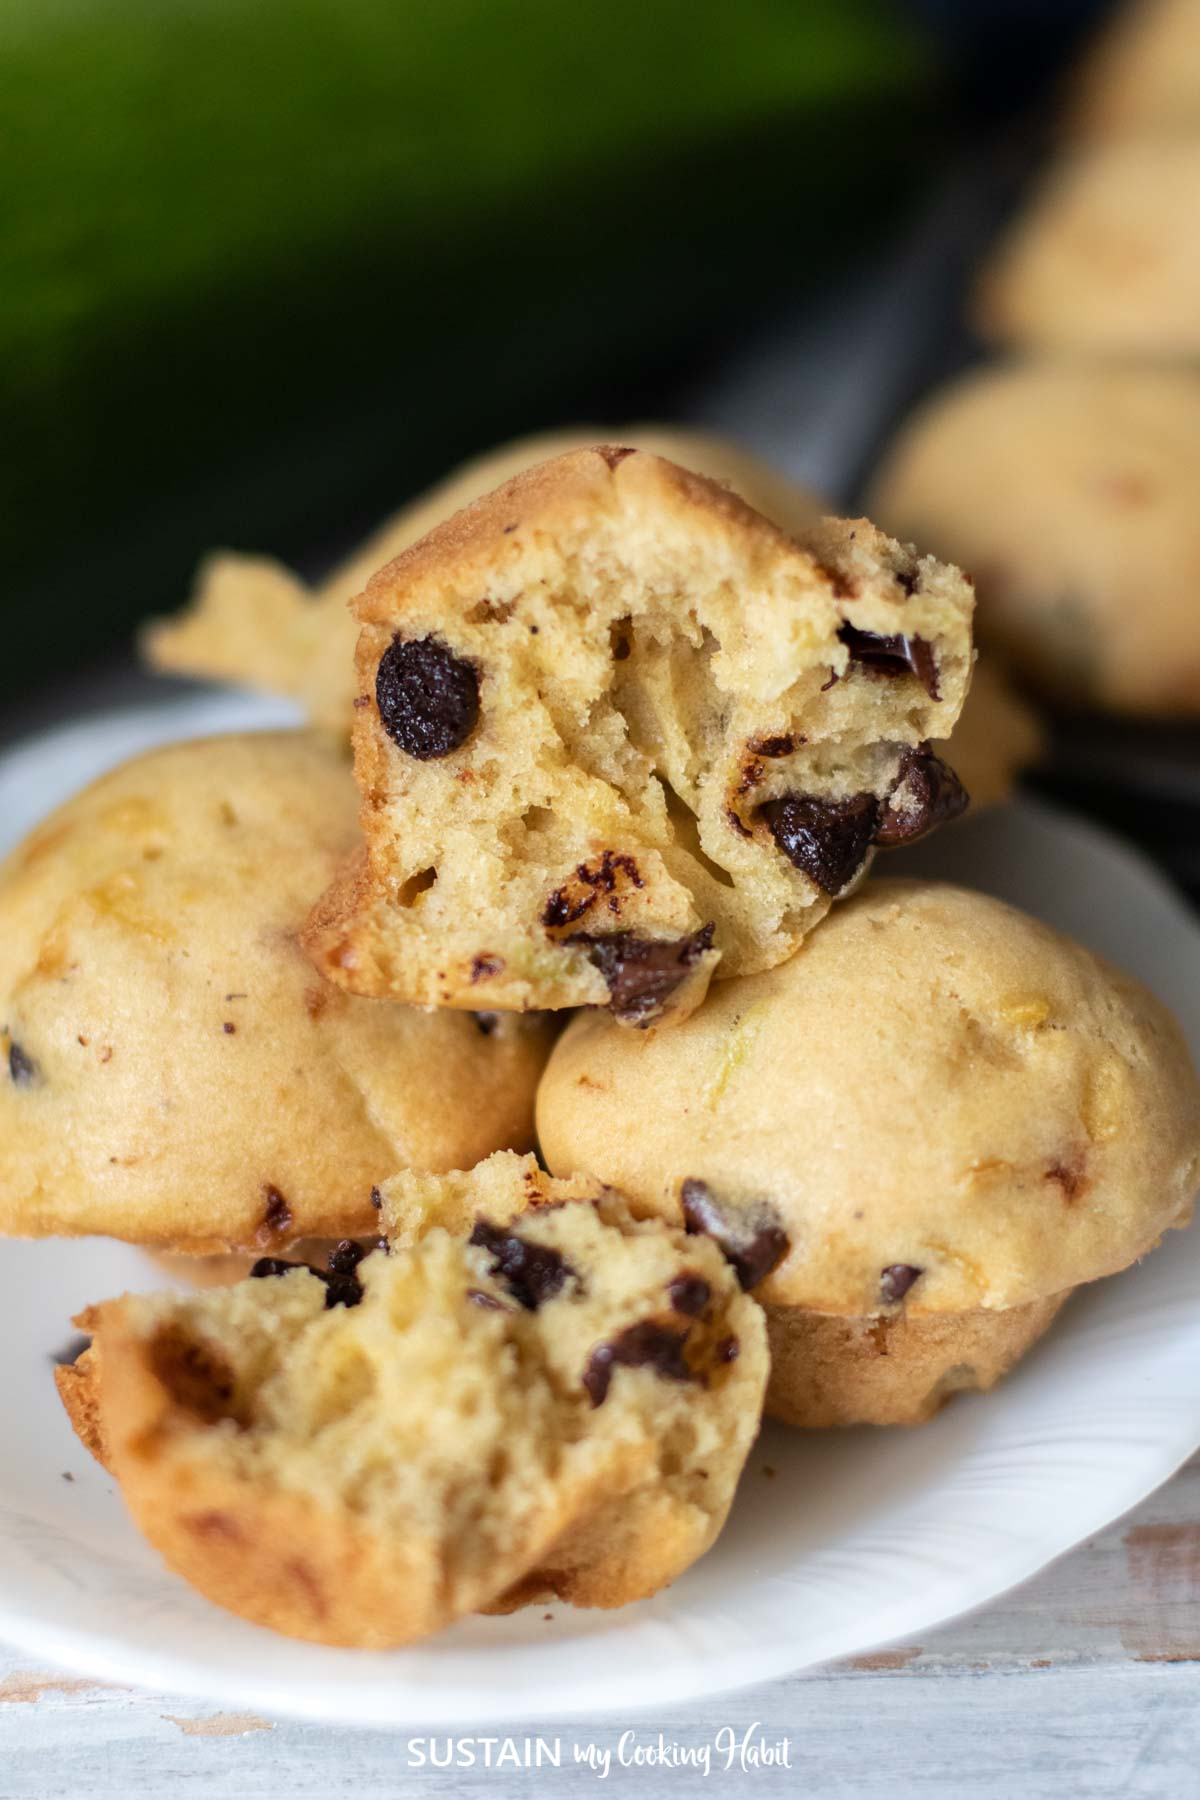 one zucchini muffin cut in half to show the chocolate chips throughout